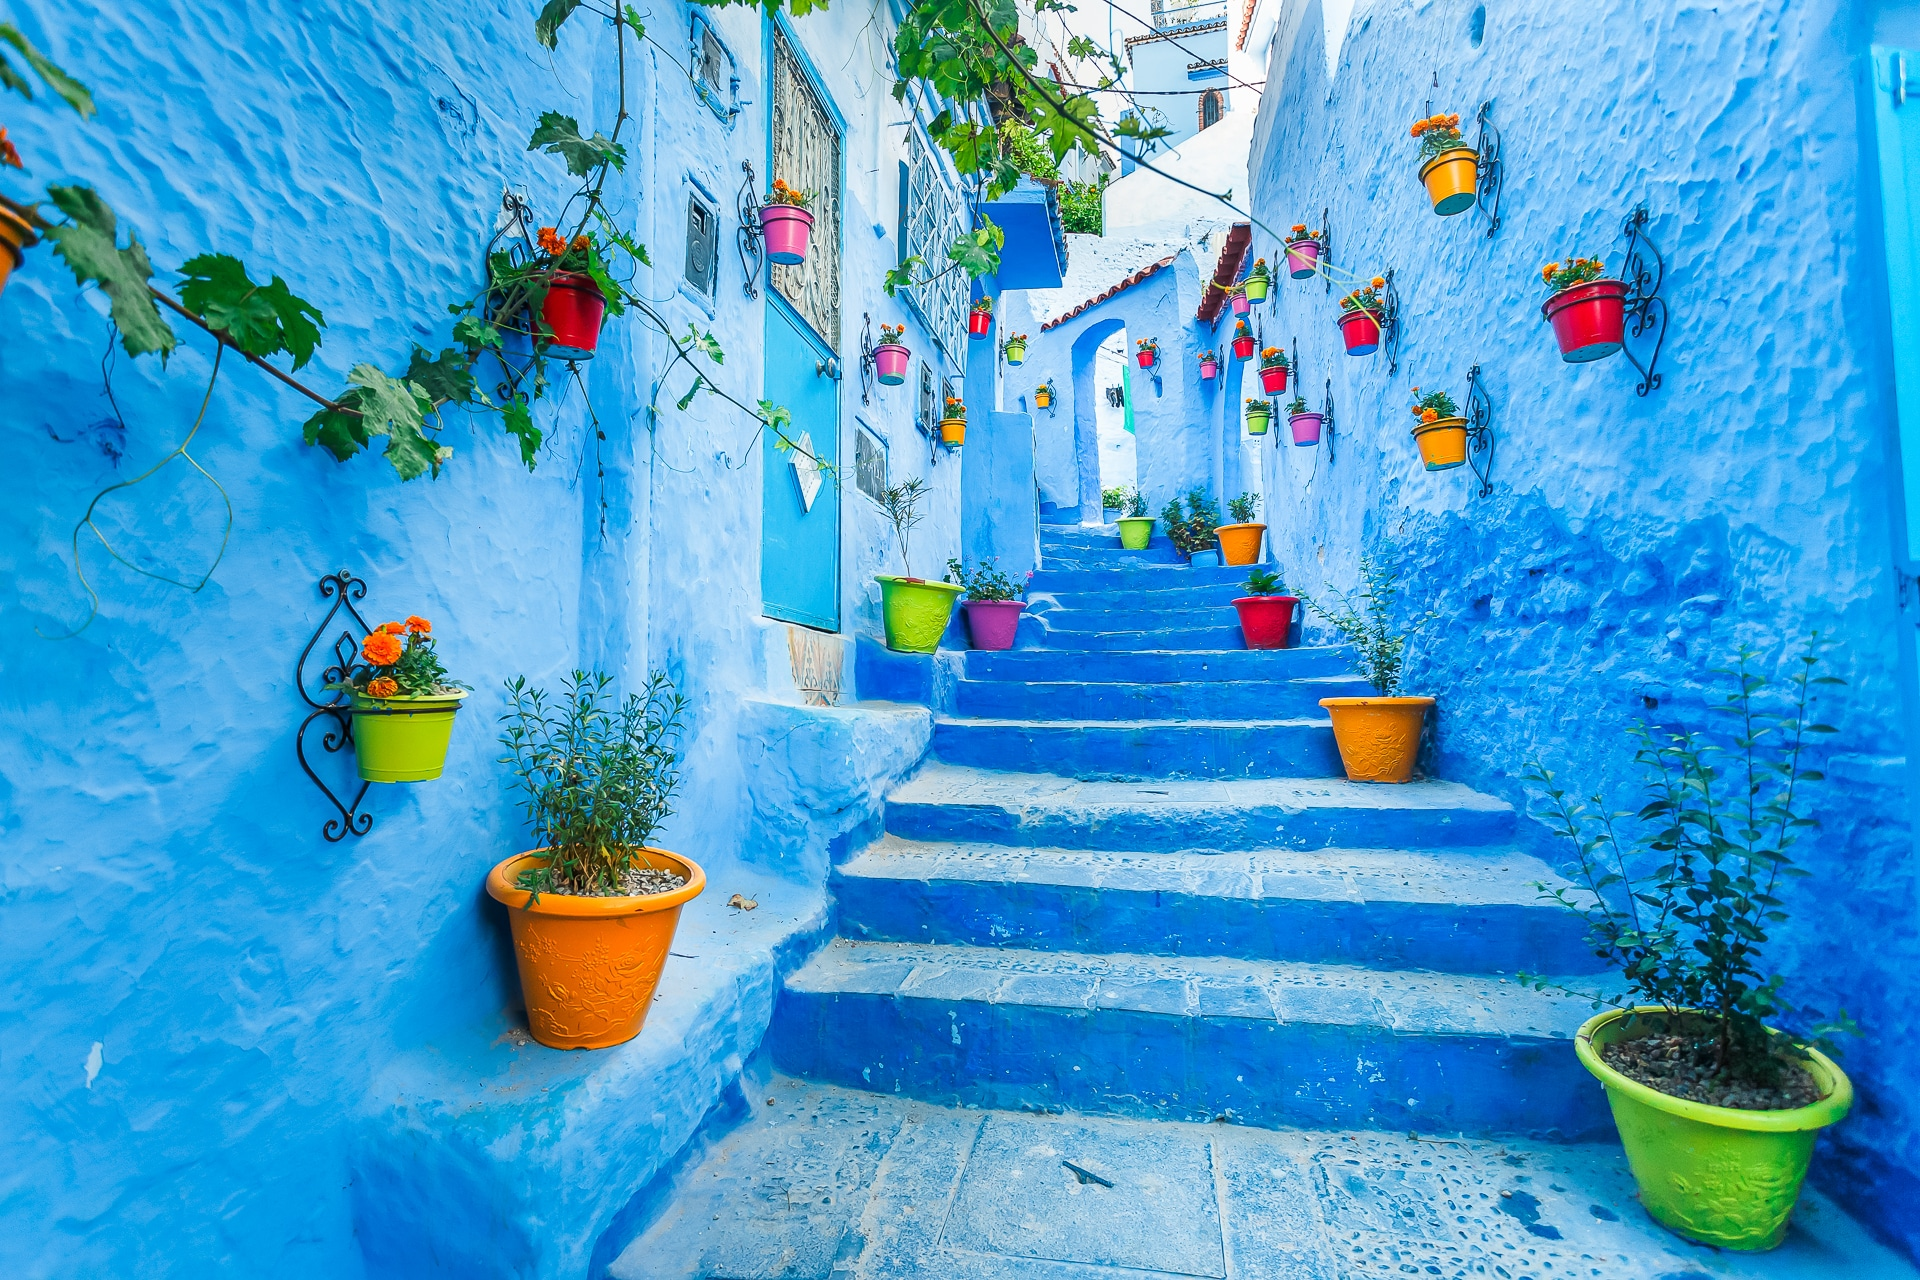 International tours and excursions in Morocco